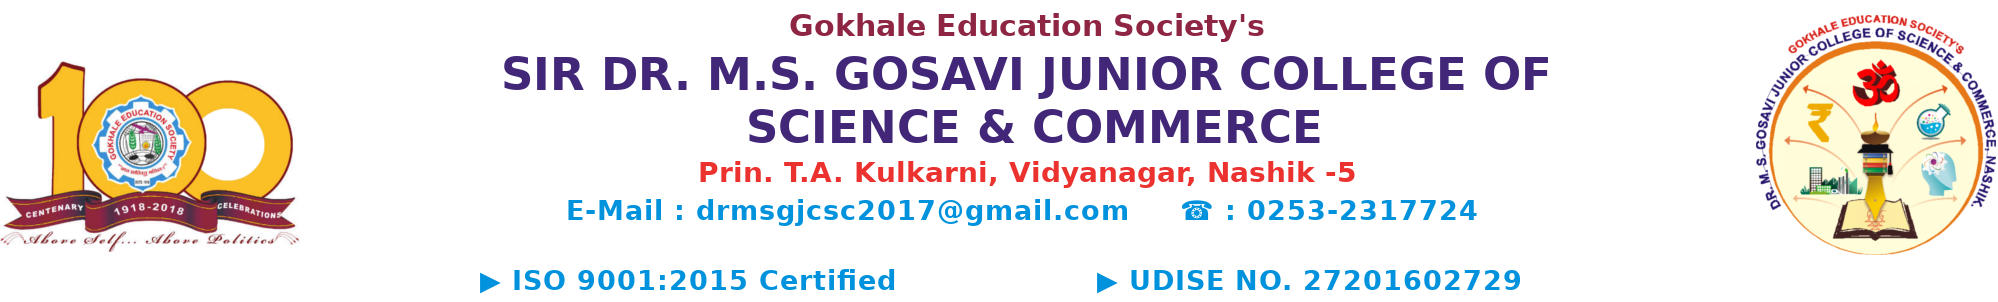 SIR DR. M.S. GOSAVI JUNIOR COLLEGE OF SCIENCE & COMMERCE